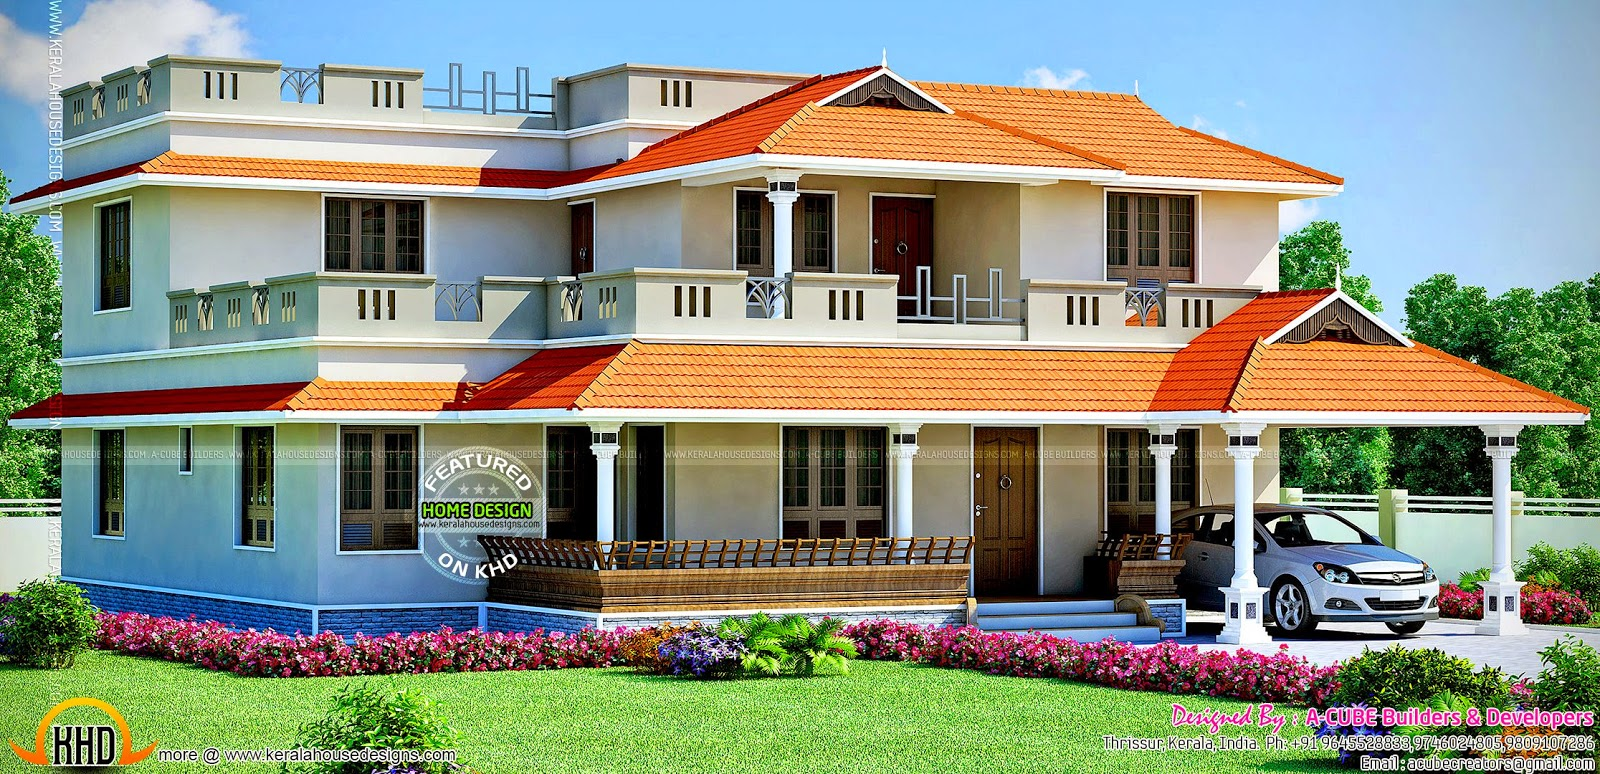 Large house design kerala home design and floor plans for Large home plans